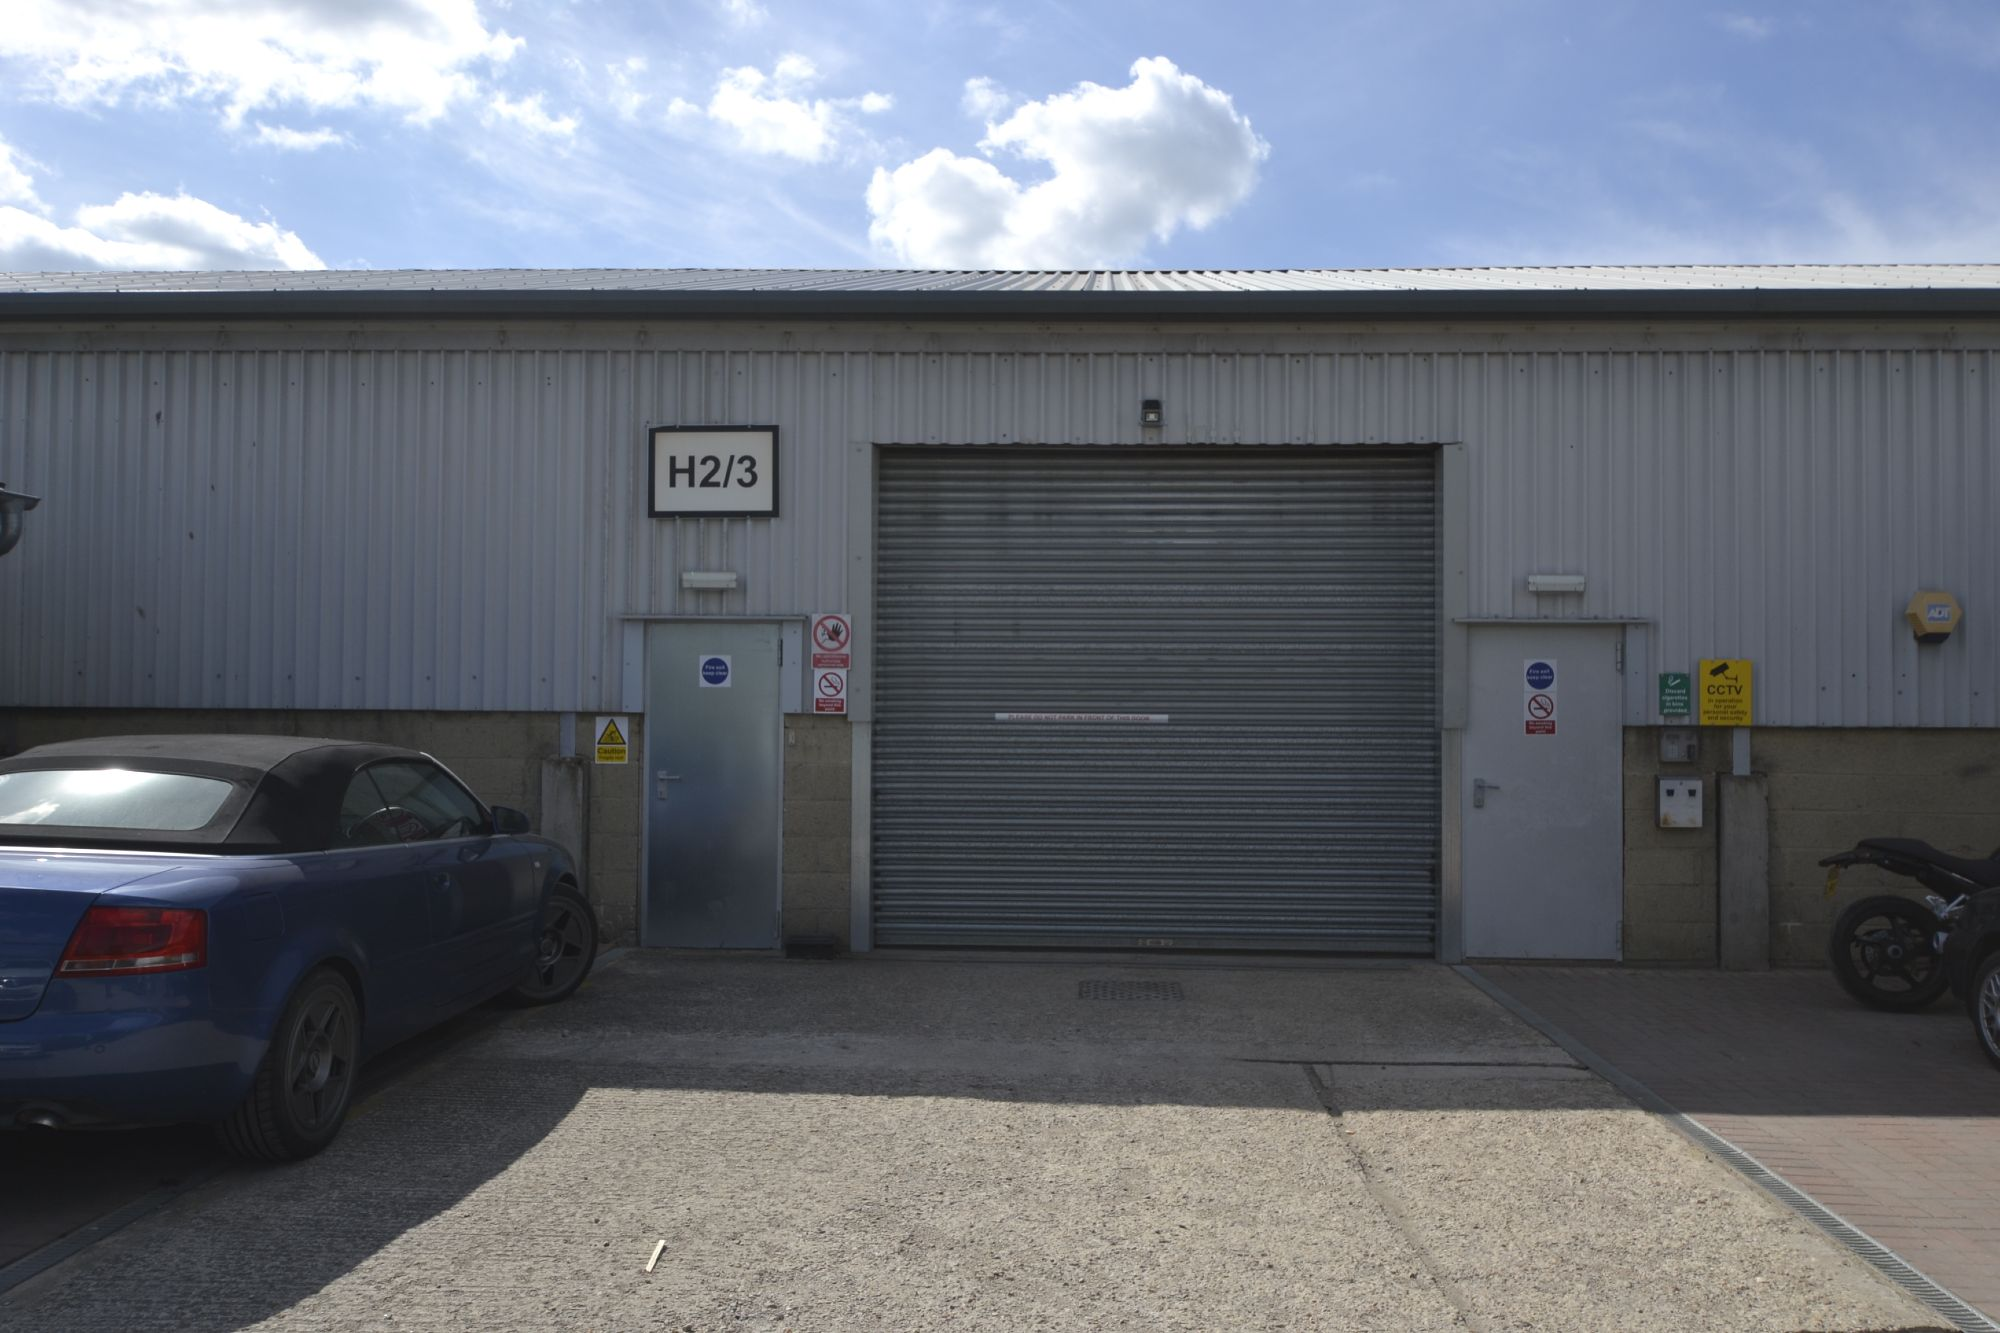 Similar property | Unit H209, H2/3 Building - Didcot